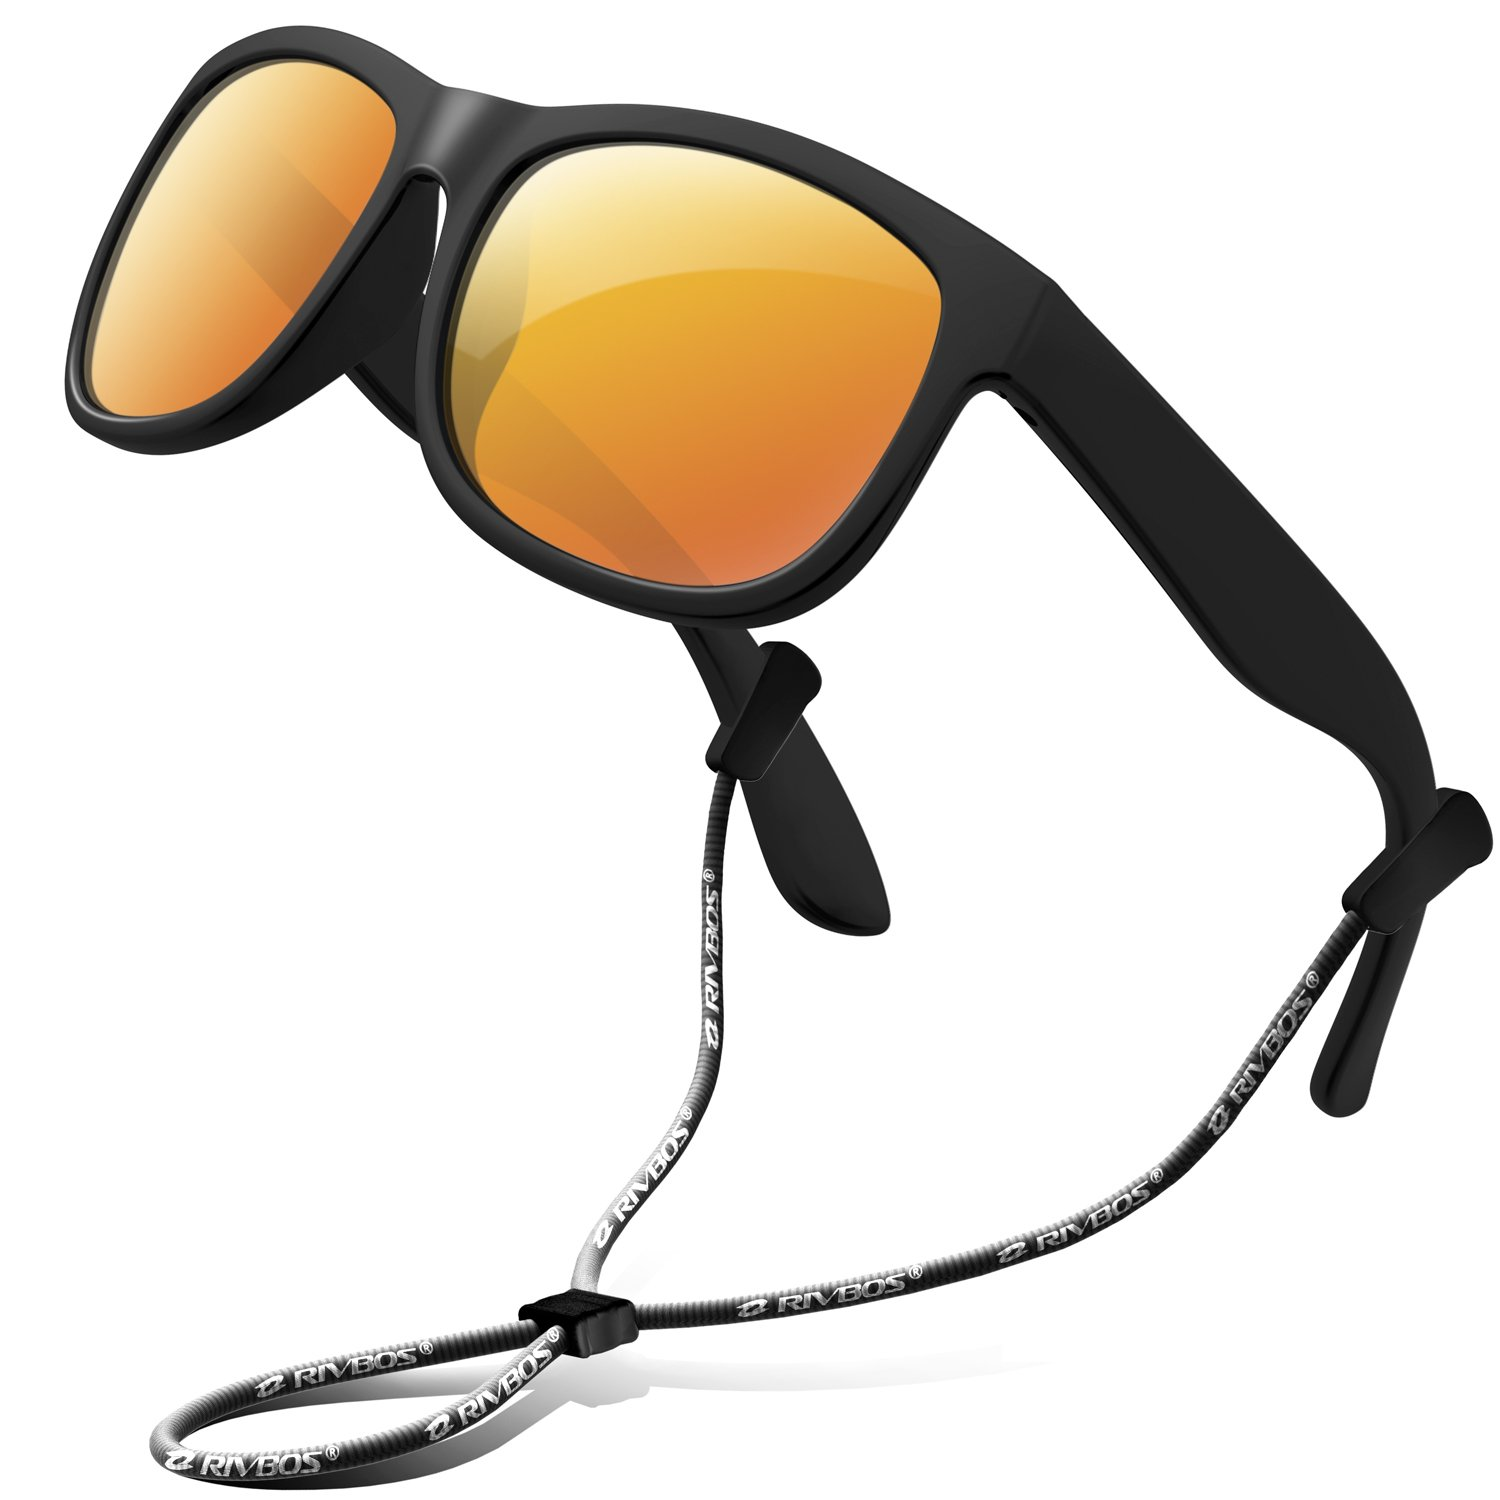 5fe29c634e2 Amazon.com  RIVBOS Rubber Kids Polarized Sunglasses With Strap Glasses  Shades for Boys Girls Baby and Children Age 3-10 RBK023 (Black Coating  Lens)  ...